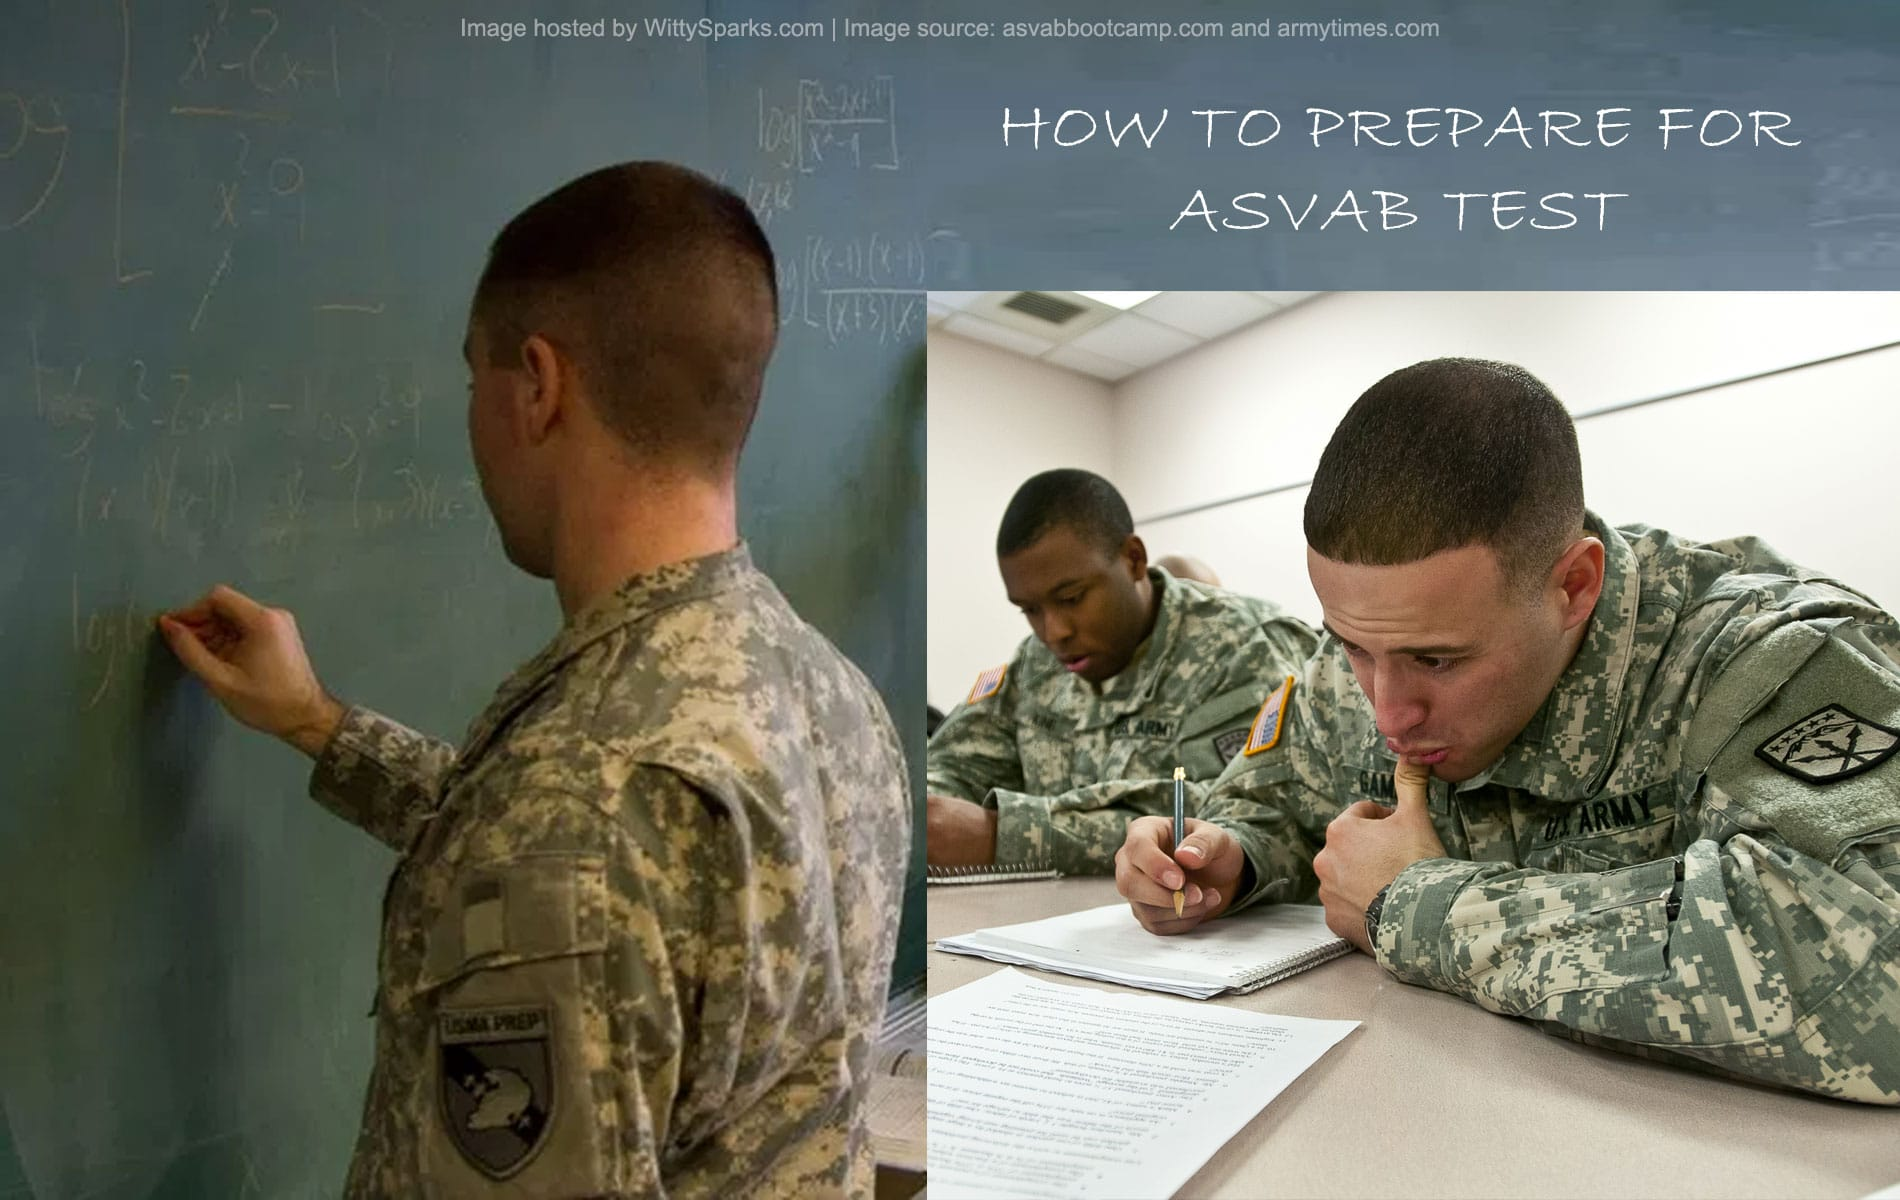 How to Prepare for ASVAB Test